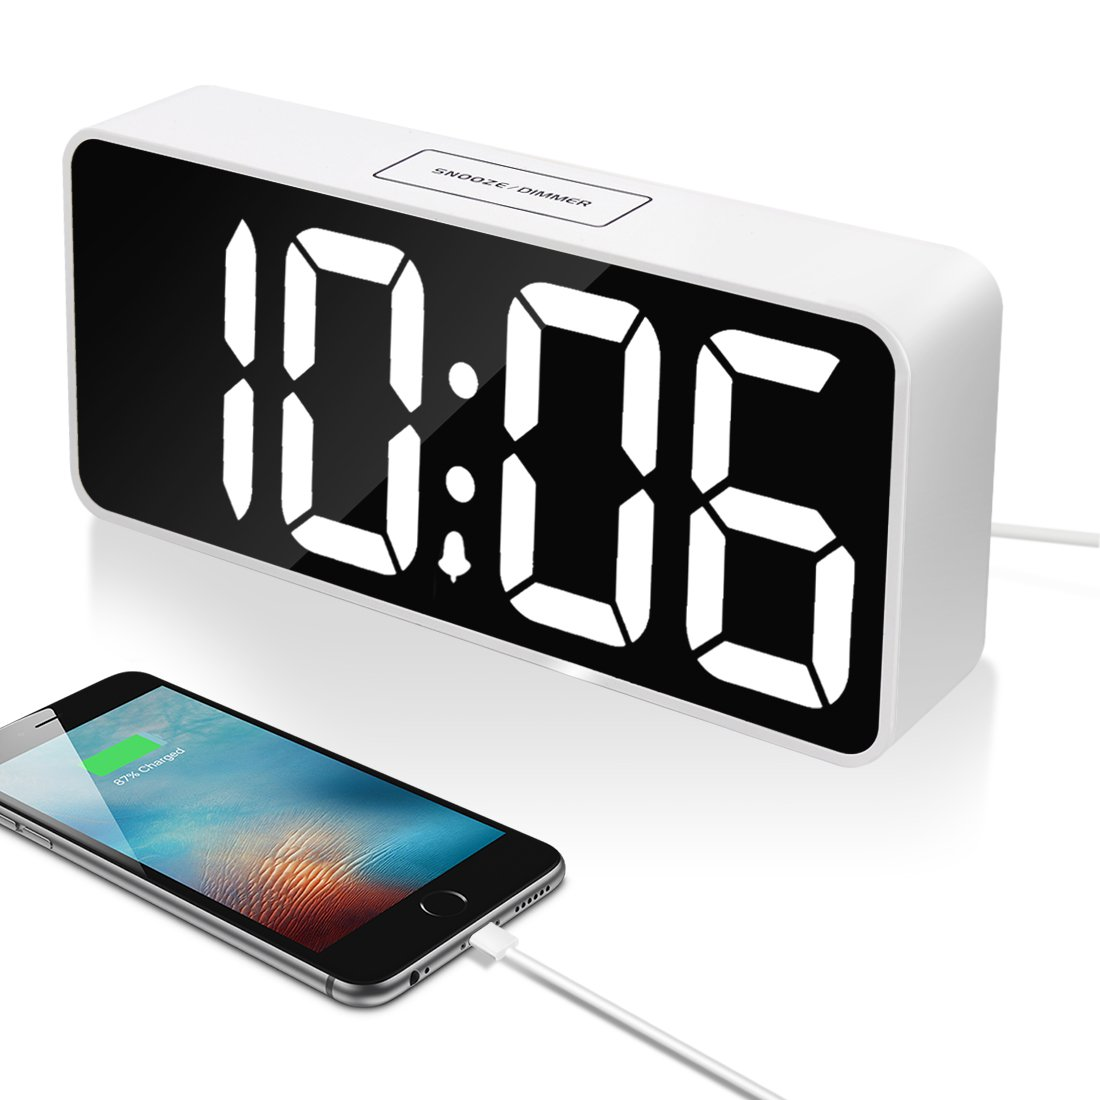 9'' Large LED Digital Alarm Clock with USB Port for Phone Charger, Touch-Activited Snooze and Dimmer, Outlet Powered (White) by Leiqi